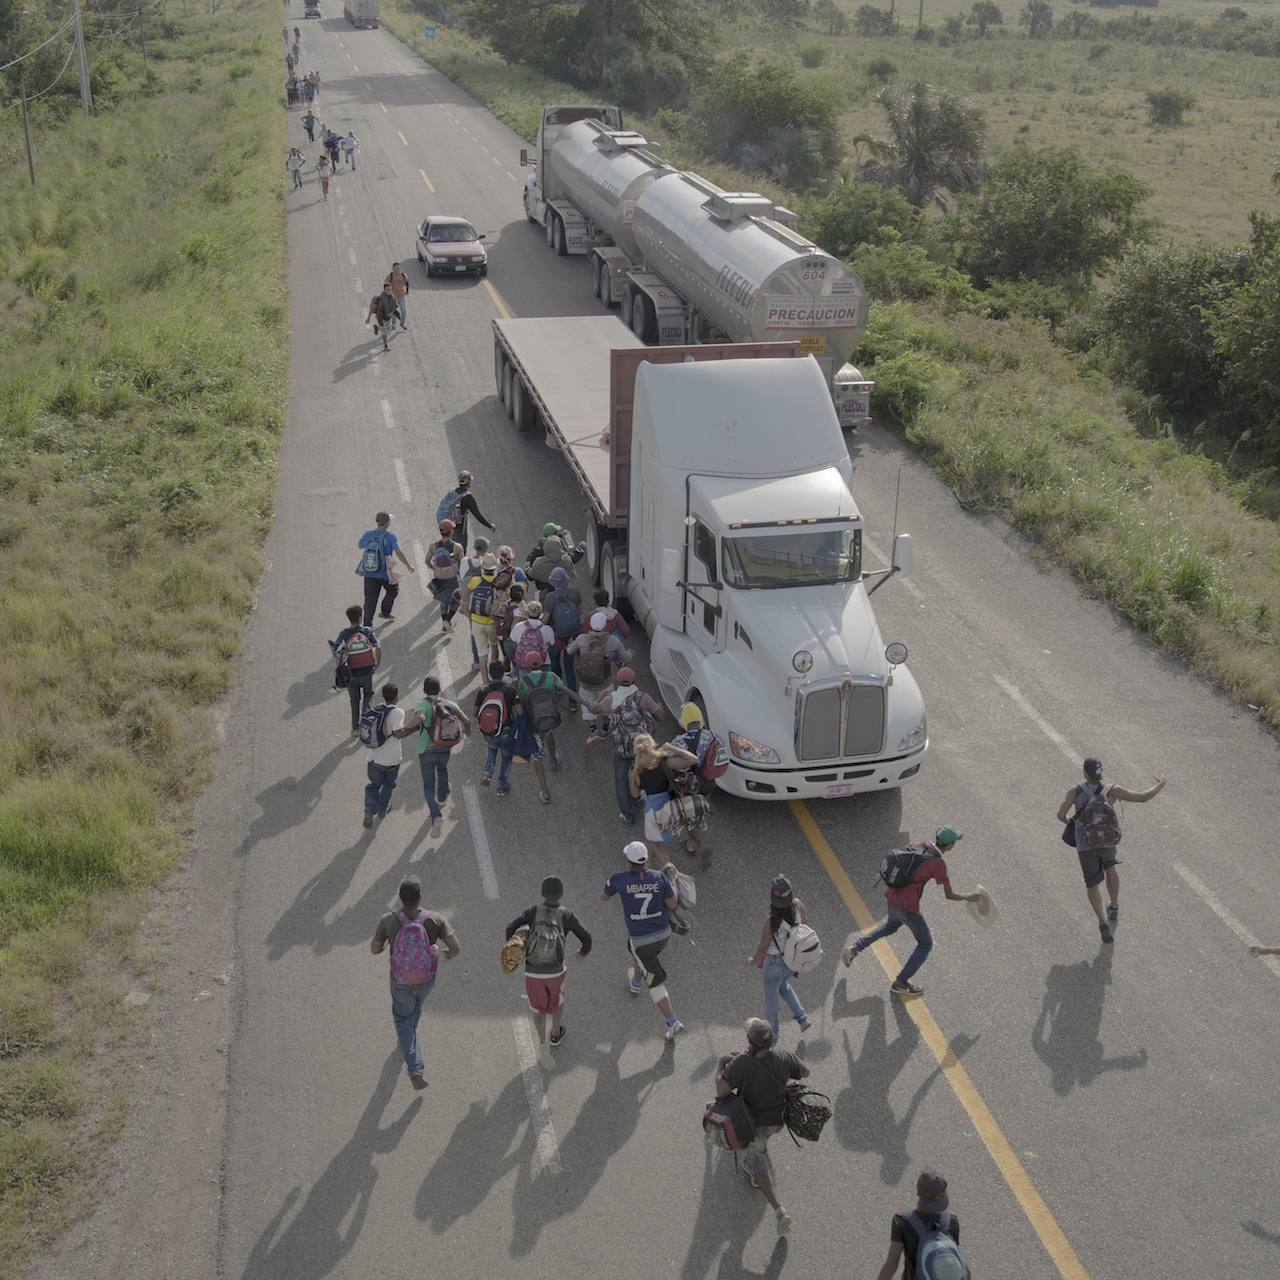 People run to a truck that has stopped to give them a ride, outside Tapanatepec, Mexico, on 30 October 2018. Some drivers charged to give travelers a lift for part of the way, but most offered services free as a sign of support. © Pieter Ten Hoopen, Agence Vu/Civilian Act